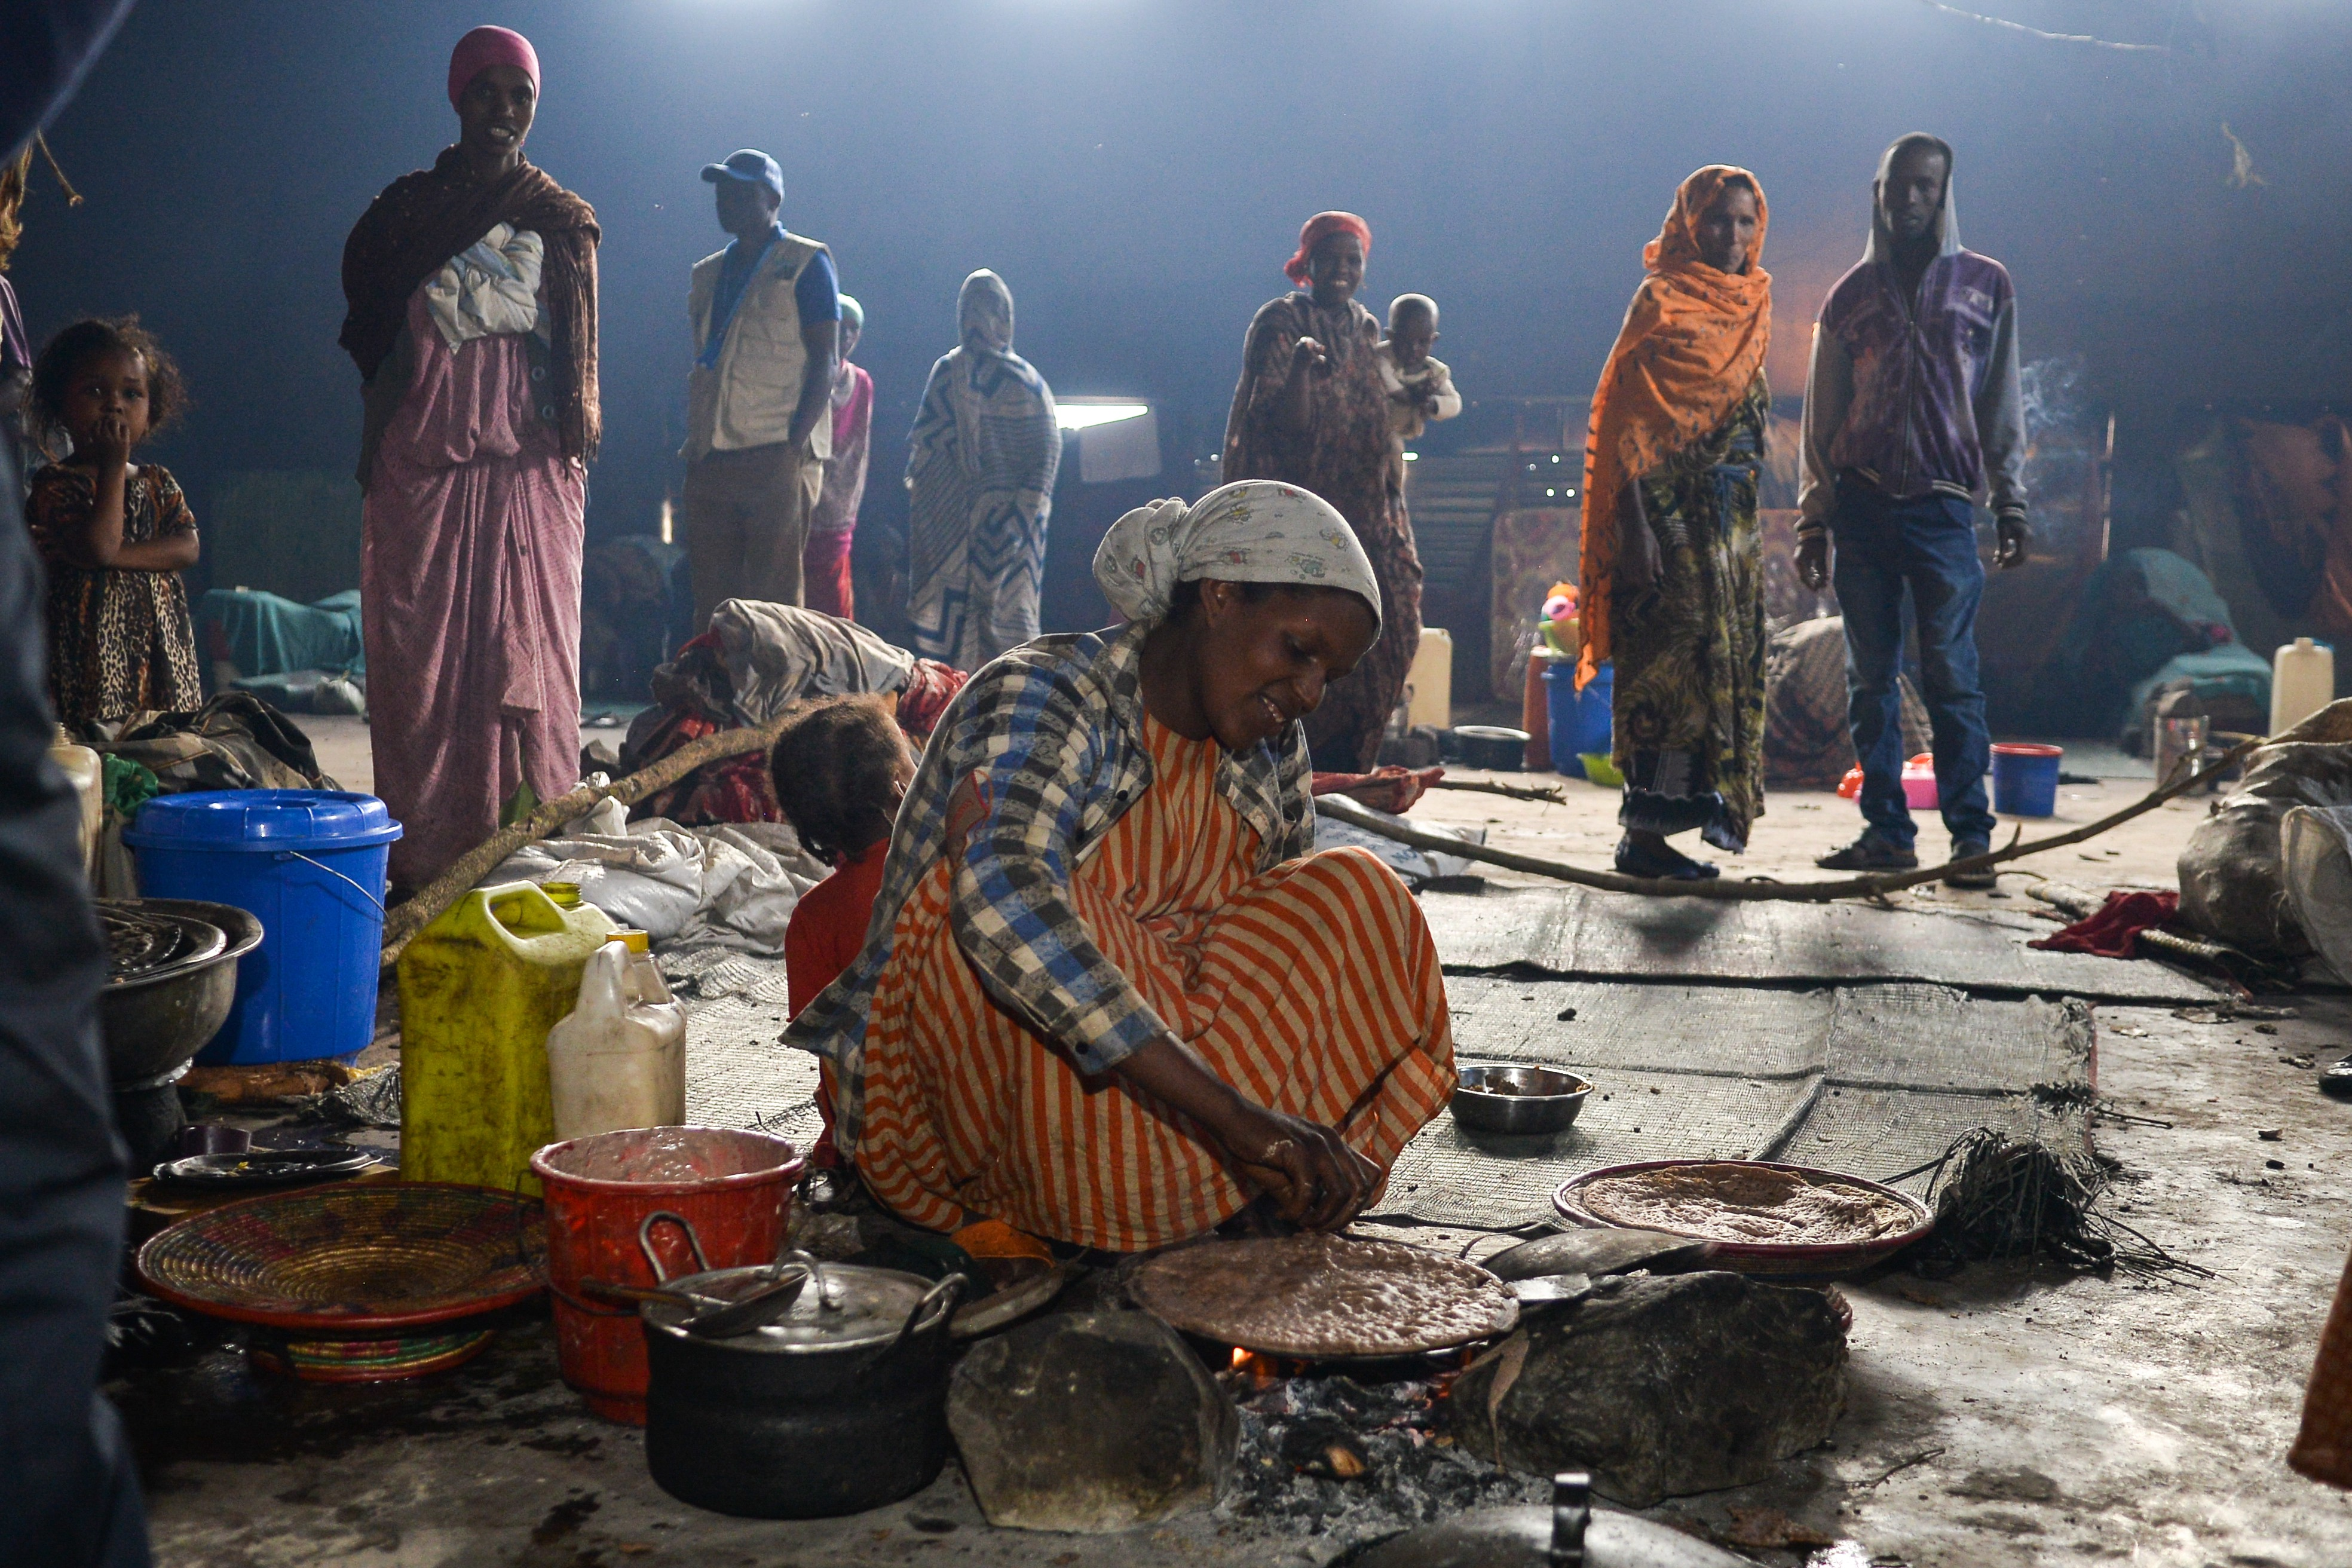 Food proves a lifeline to those fleeing conflict in Ethiopia